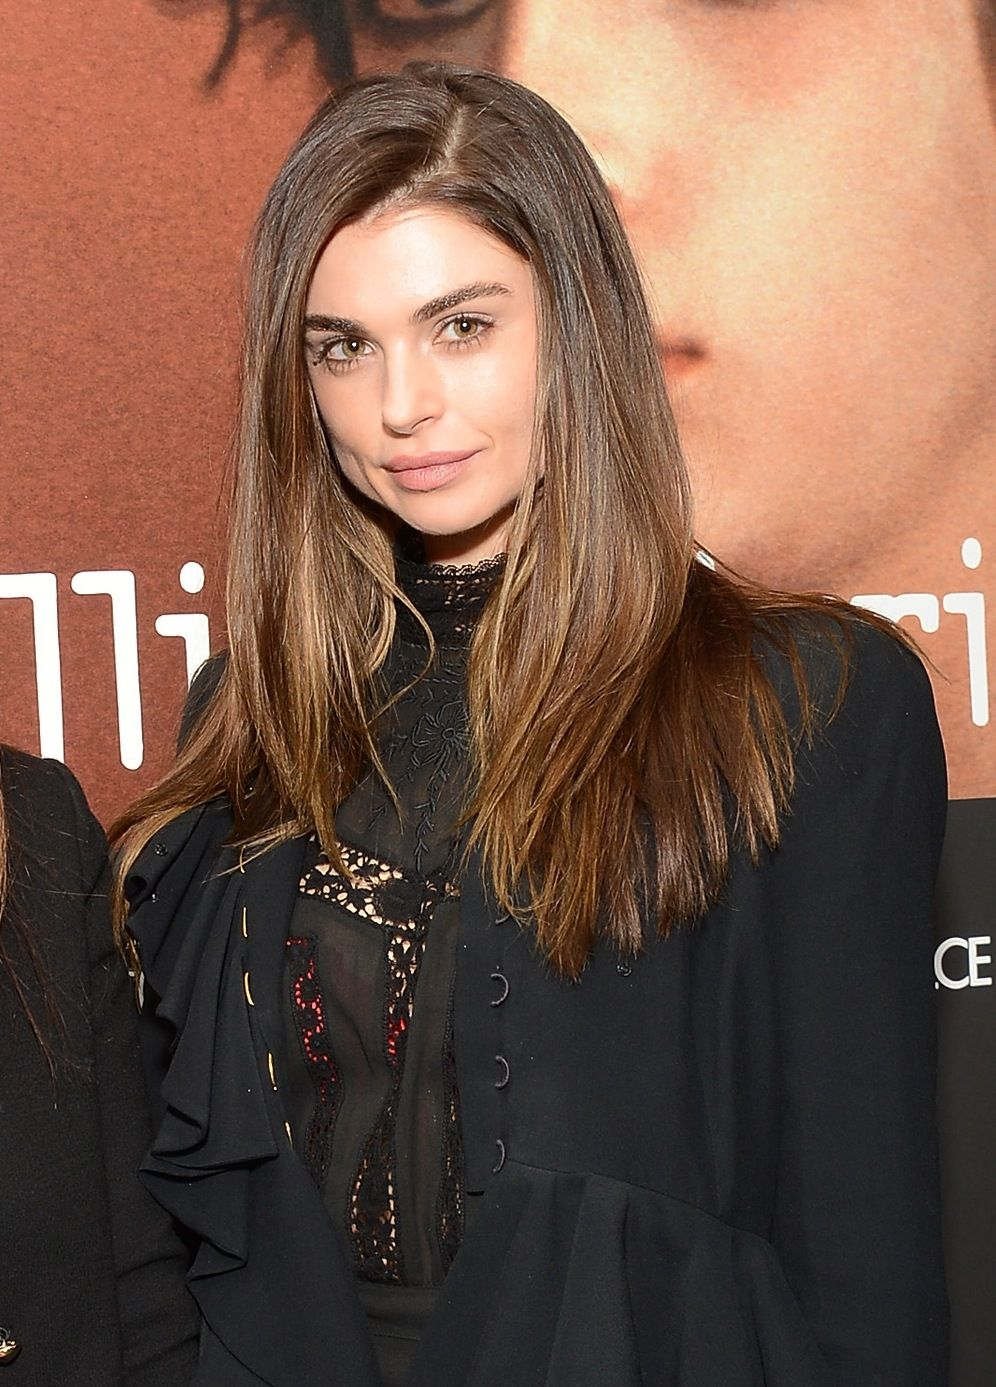 Discussion on this topic: Gayathri Raguram, aimee-osbourne/